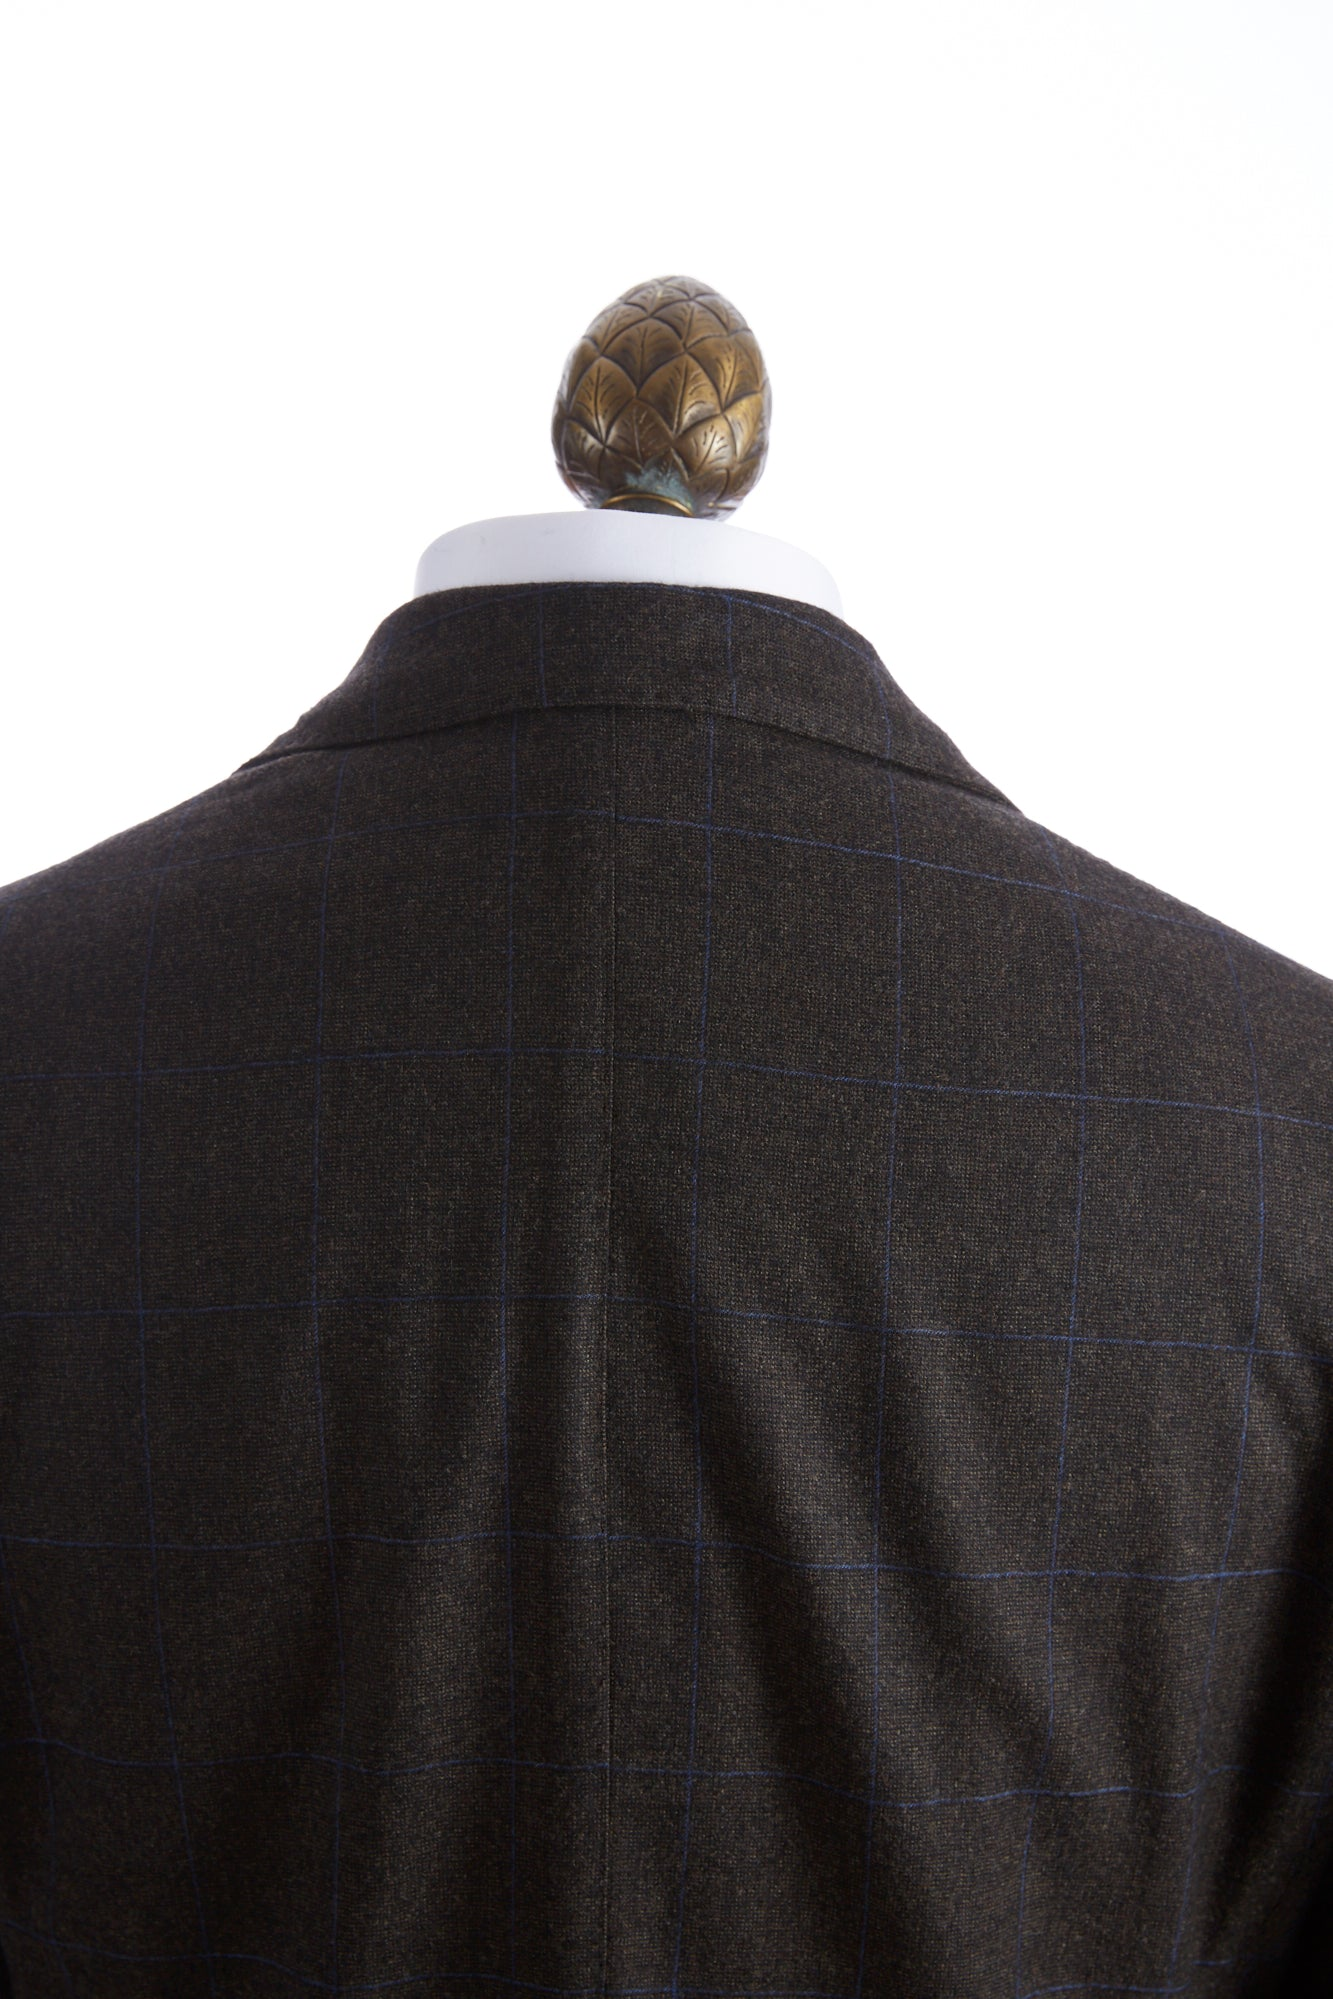 L.B.M. 1911 Brown with Blue Check Wool Jacket - Sport Jackets - L.B.M. 1911 - LALONDE's